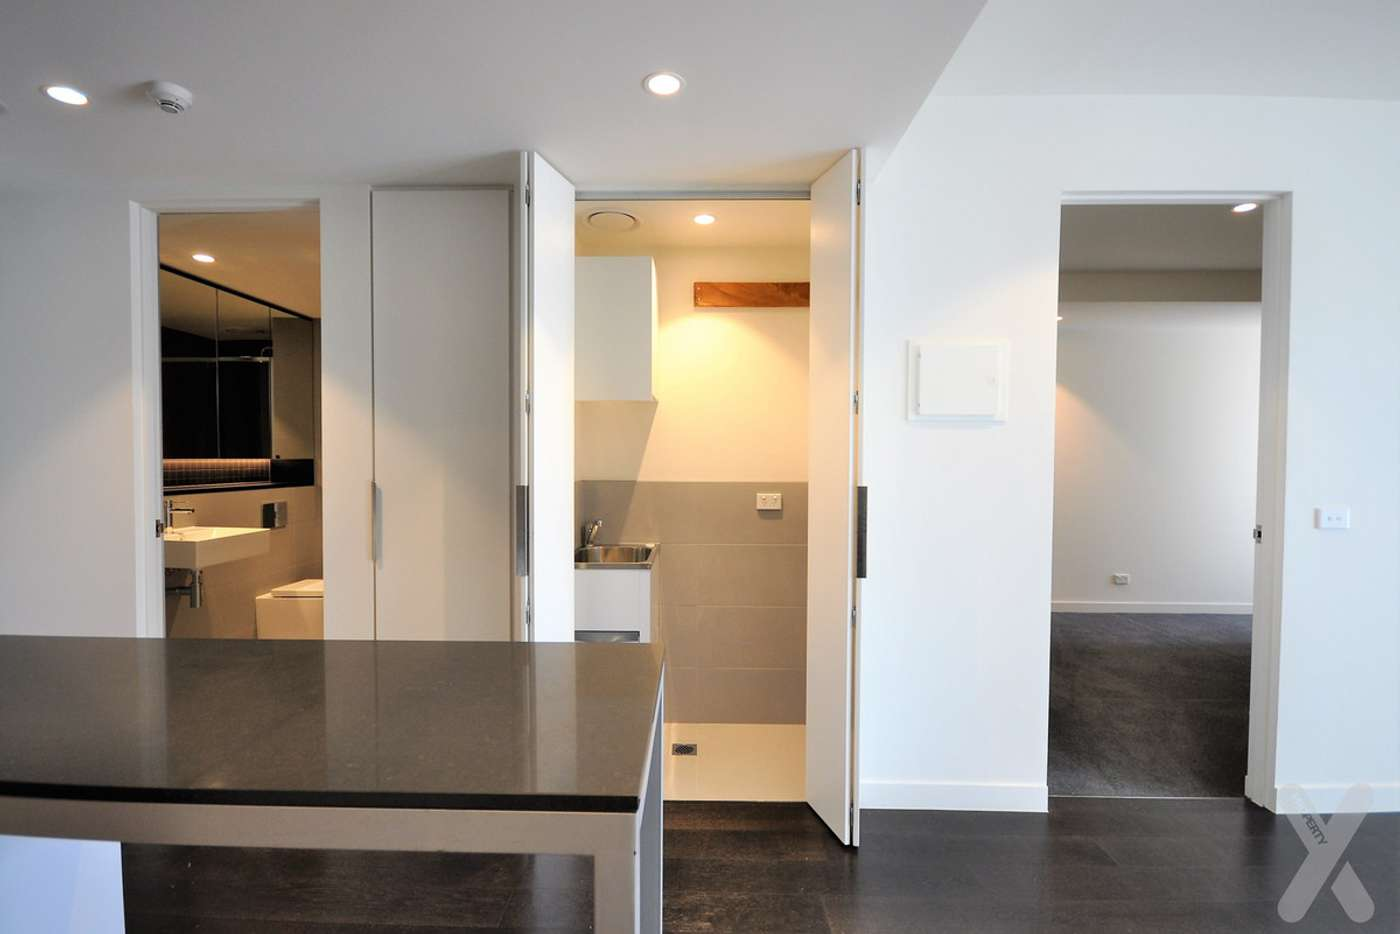 Sixth view of Homely apartment listing, 142/158 Smith Street, Collingwood VIC 3066